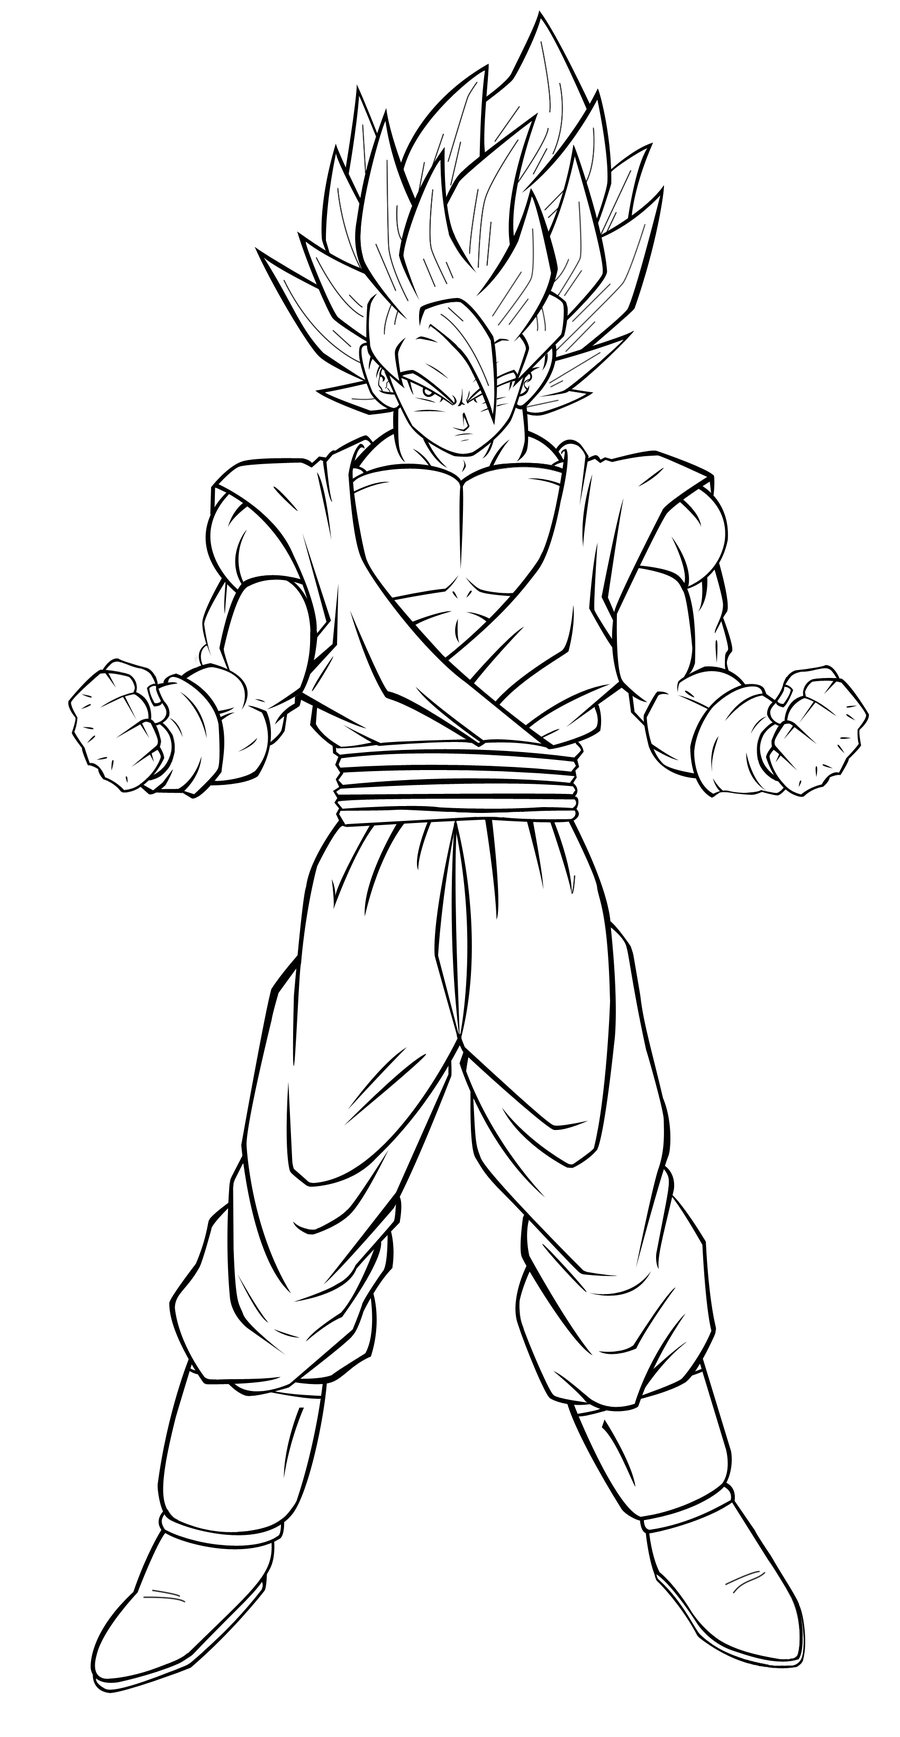 Goku Ssj Coloring Pages At Getdrawings Free Download